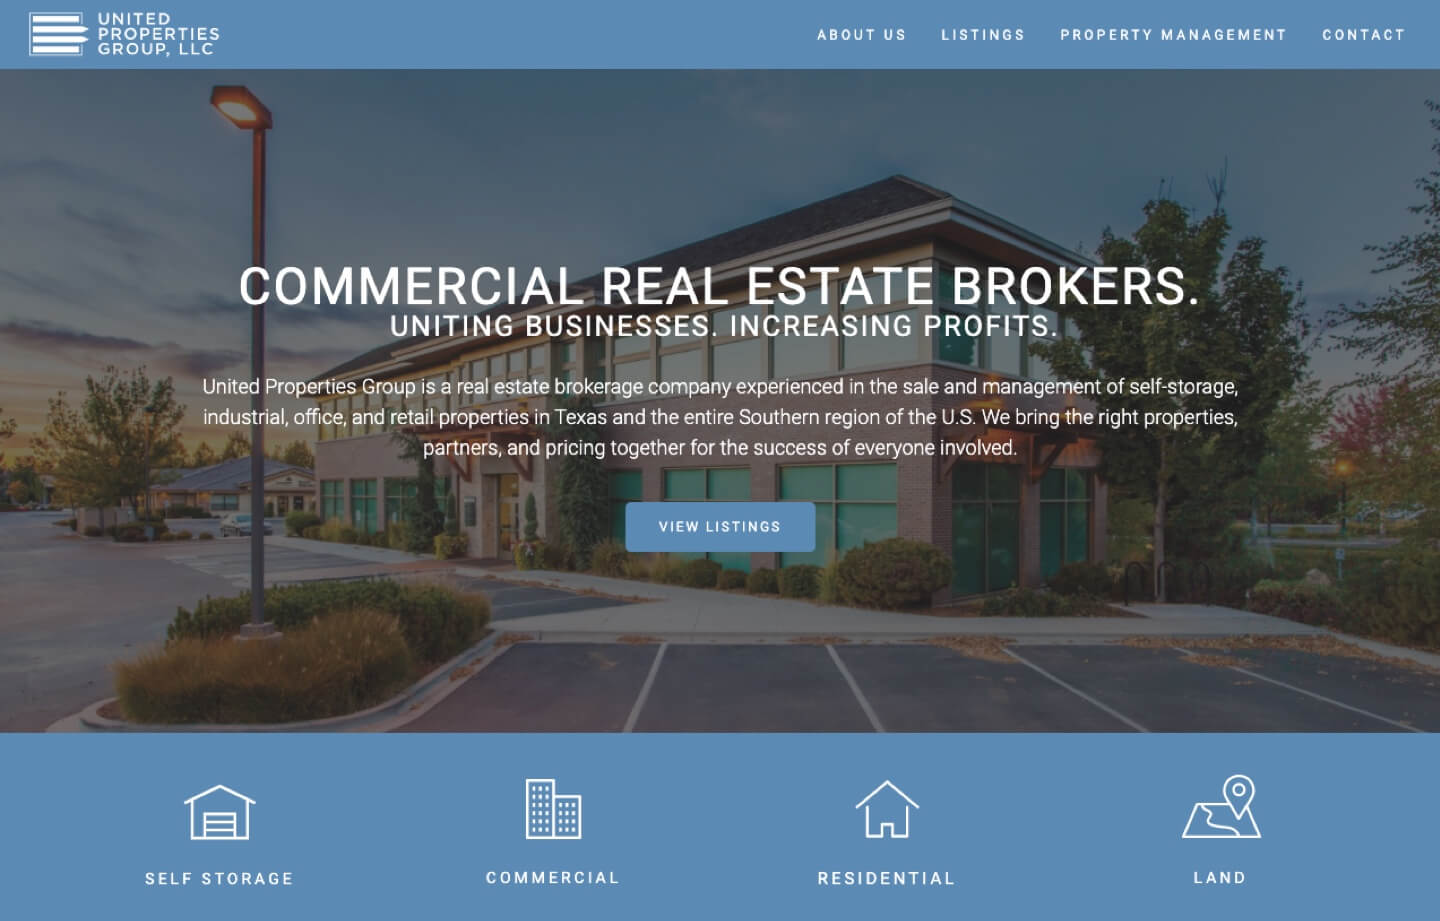 Real estate and brokerage website for united properties group LLC